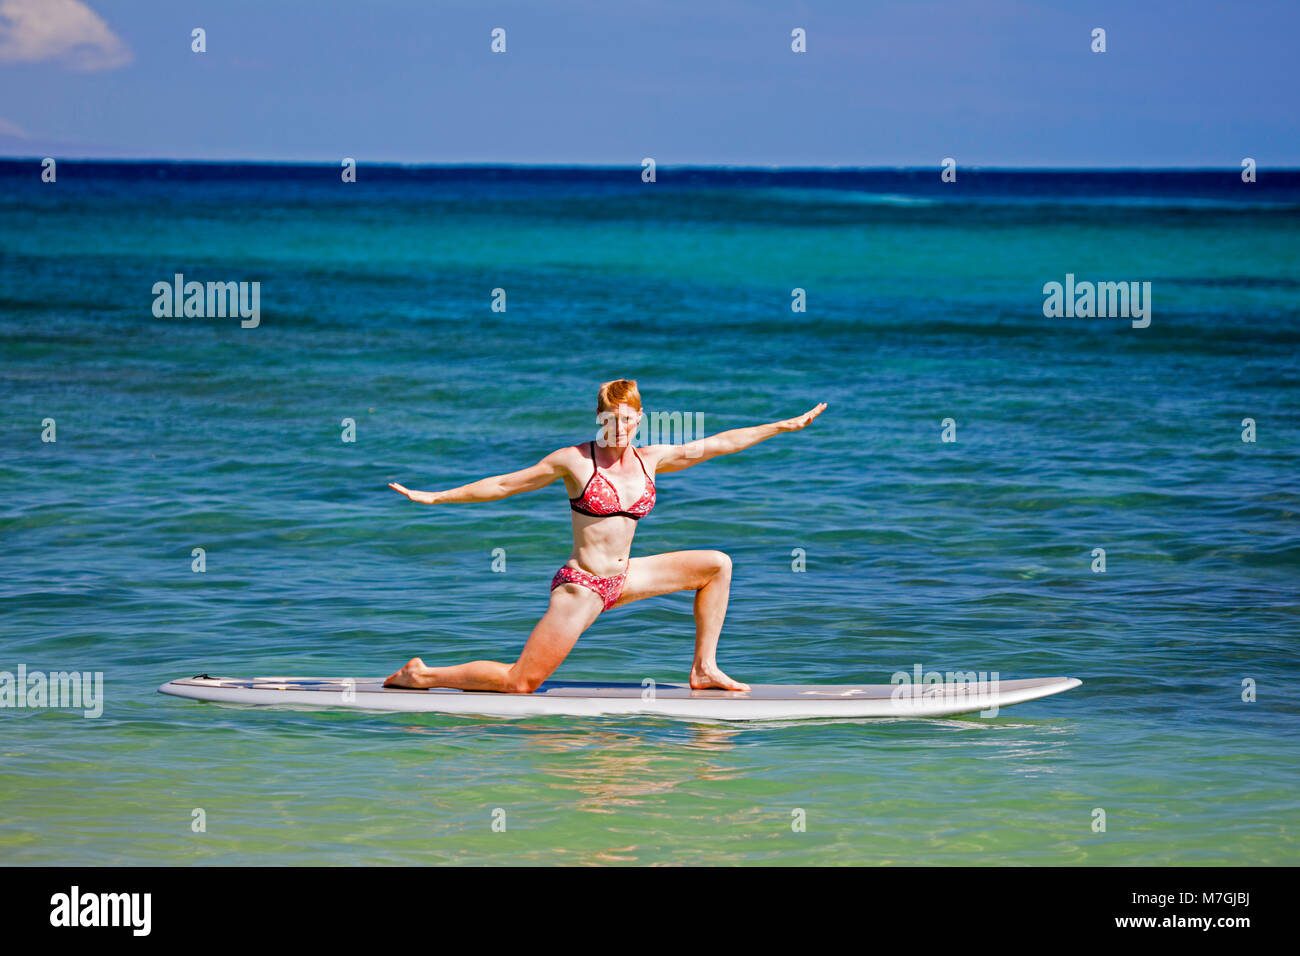 A woman on a stand-up paddle board in a yoga position, Maui, Hawaii. - Stock Image